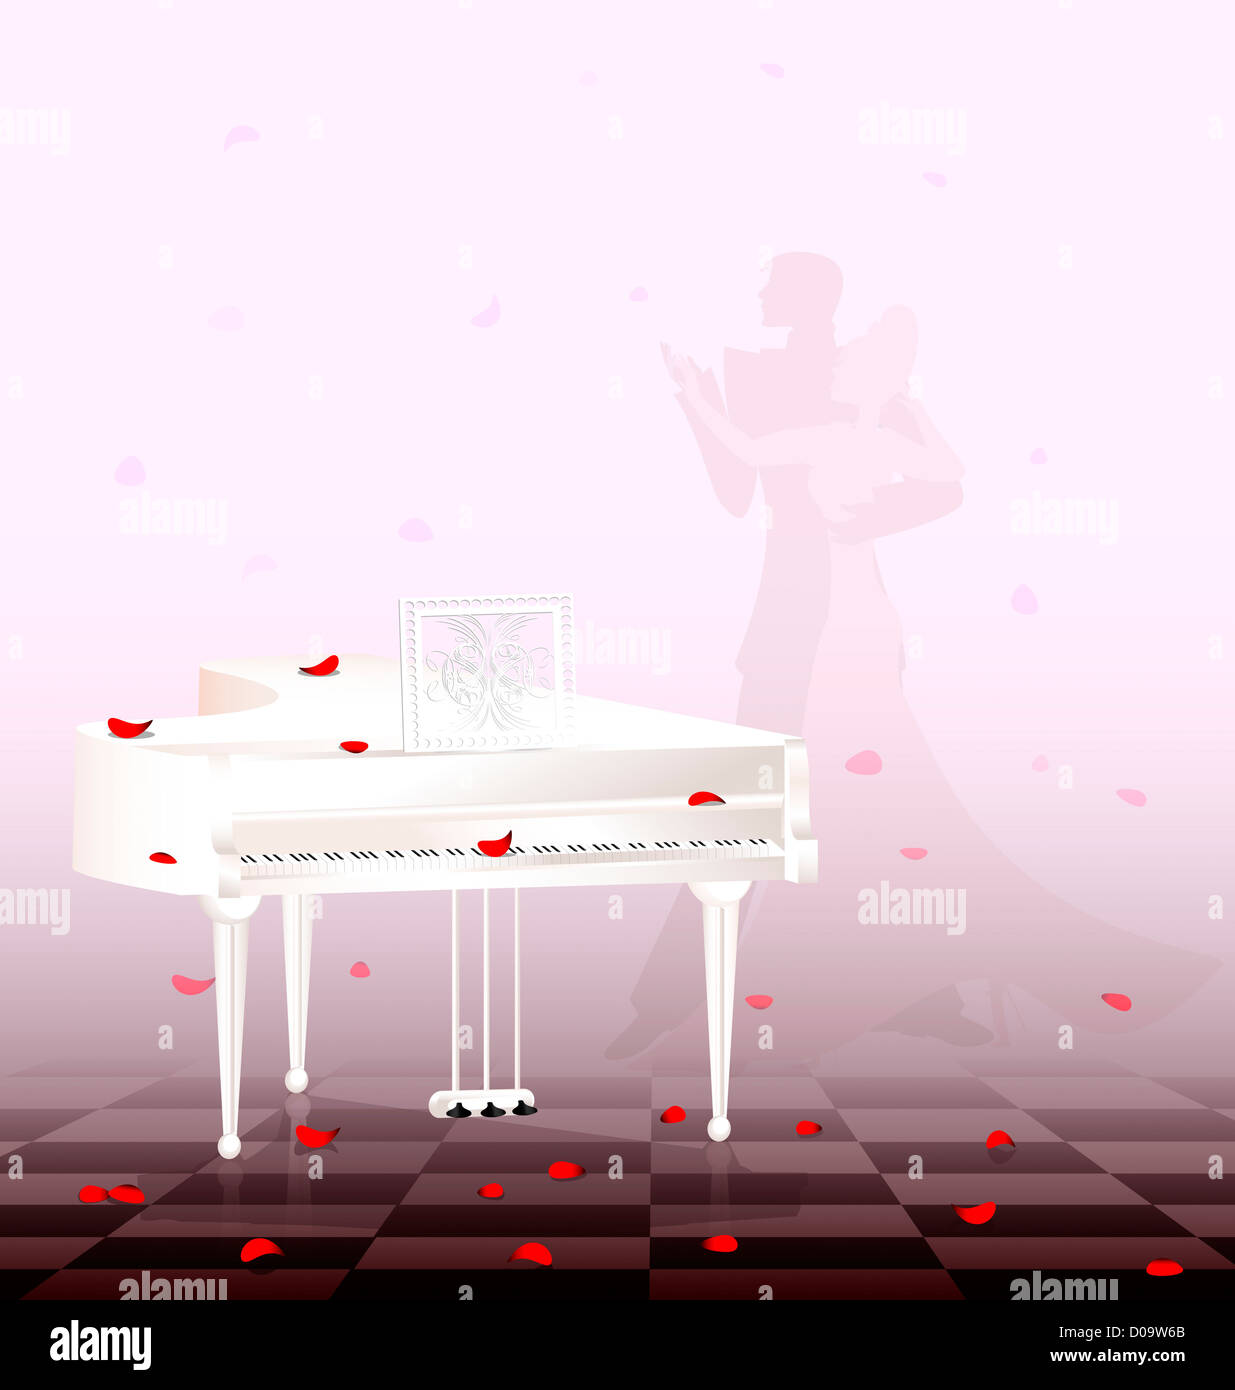 in light room are white grand piano and flying red petals - Stock Image